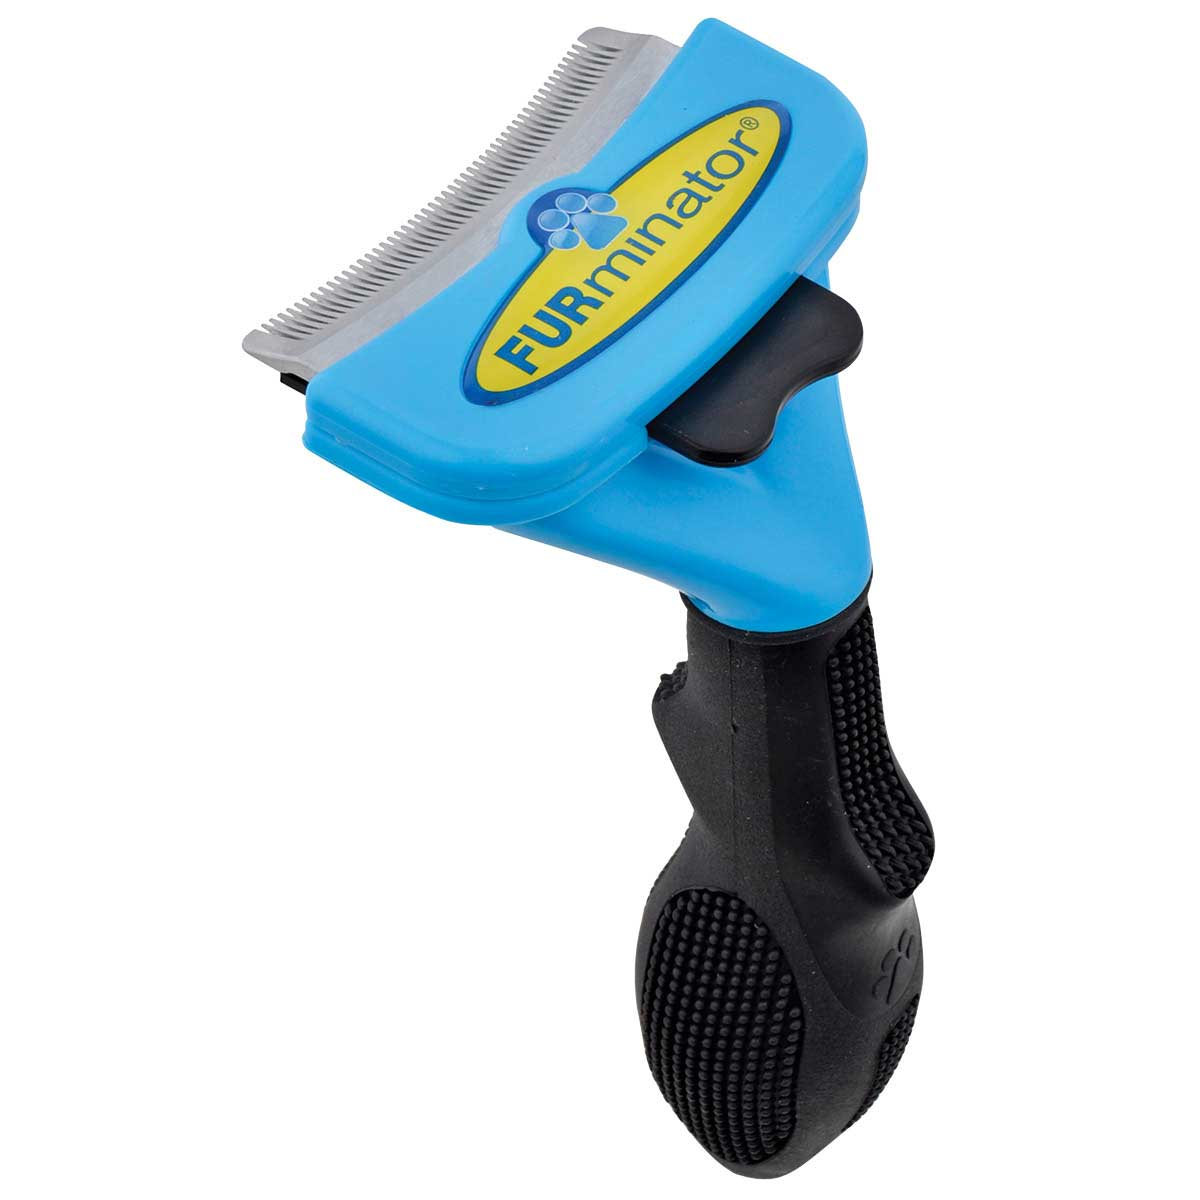 Furminator Comfort Edge Deshedding Tool for Small Dogs